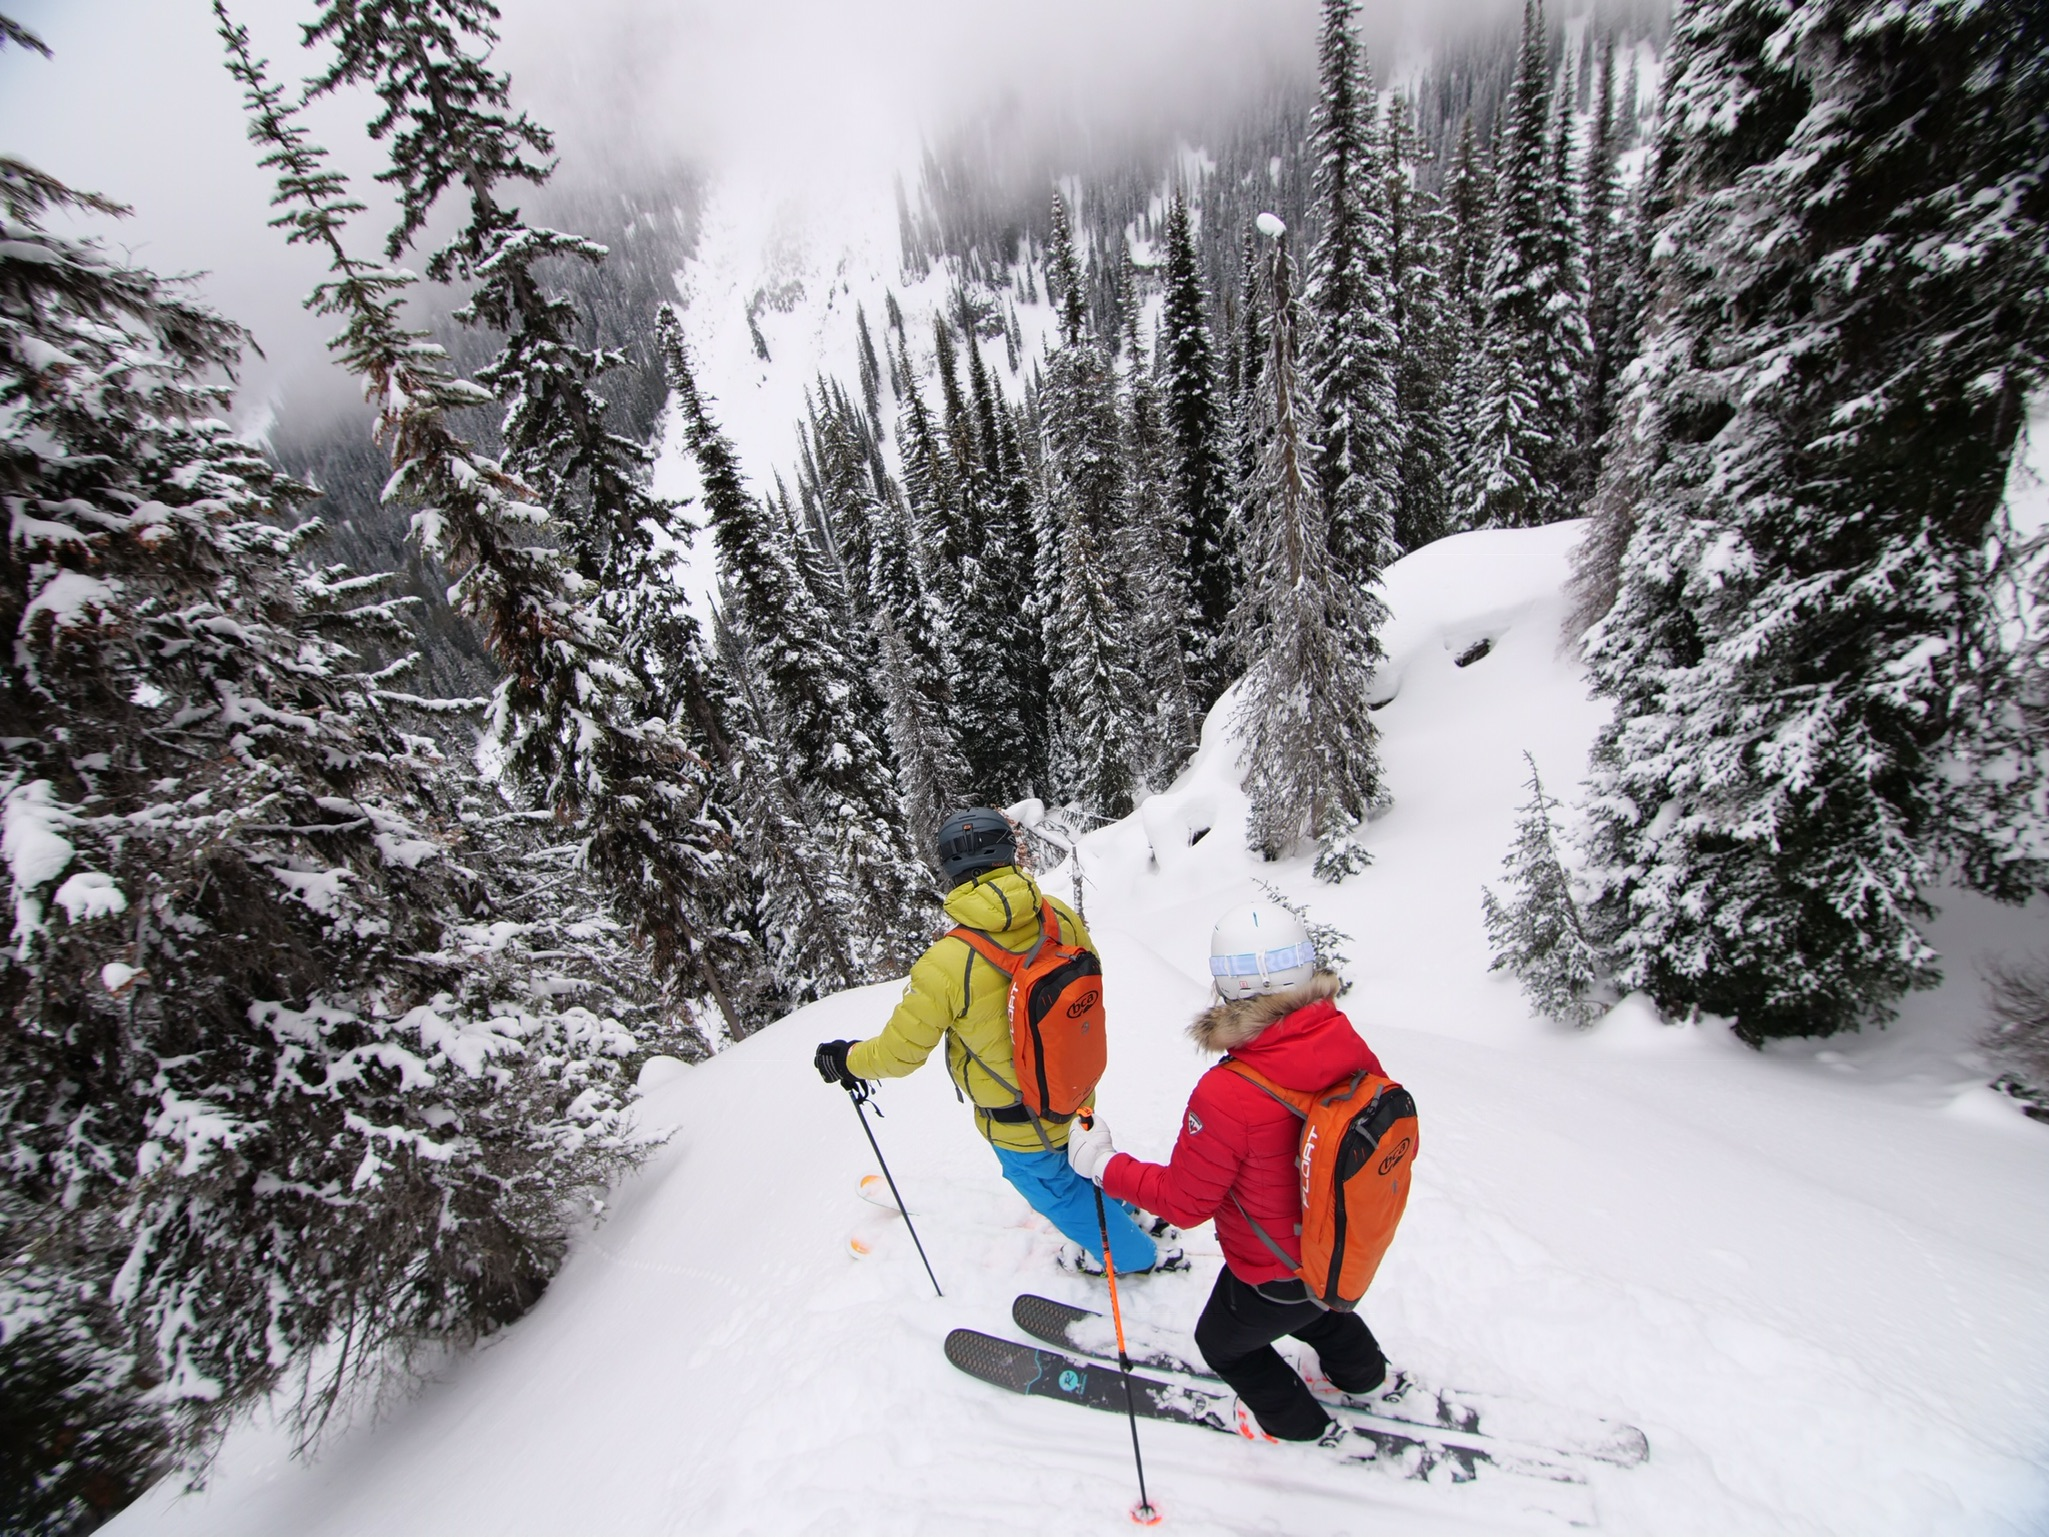 KINGS & QUEEN FOR A DAY - Kingfisher brings big mountain and high-end heli skiing to a new level.